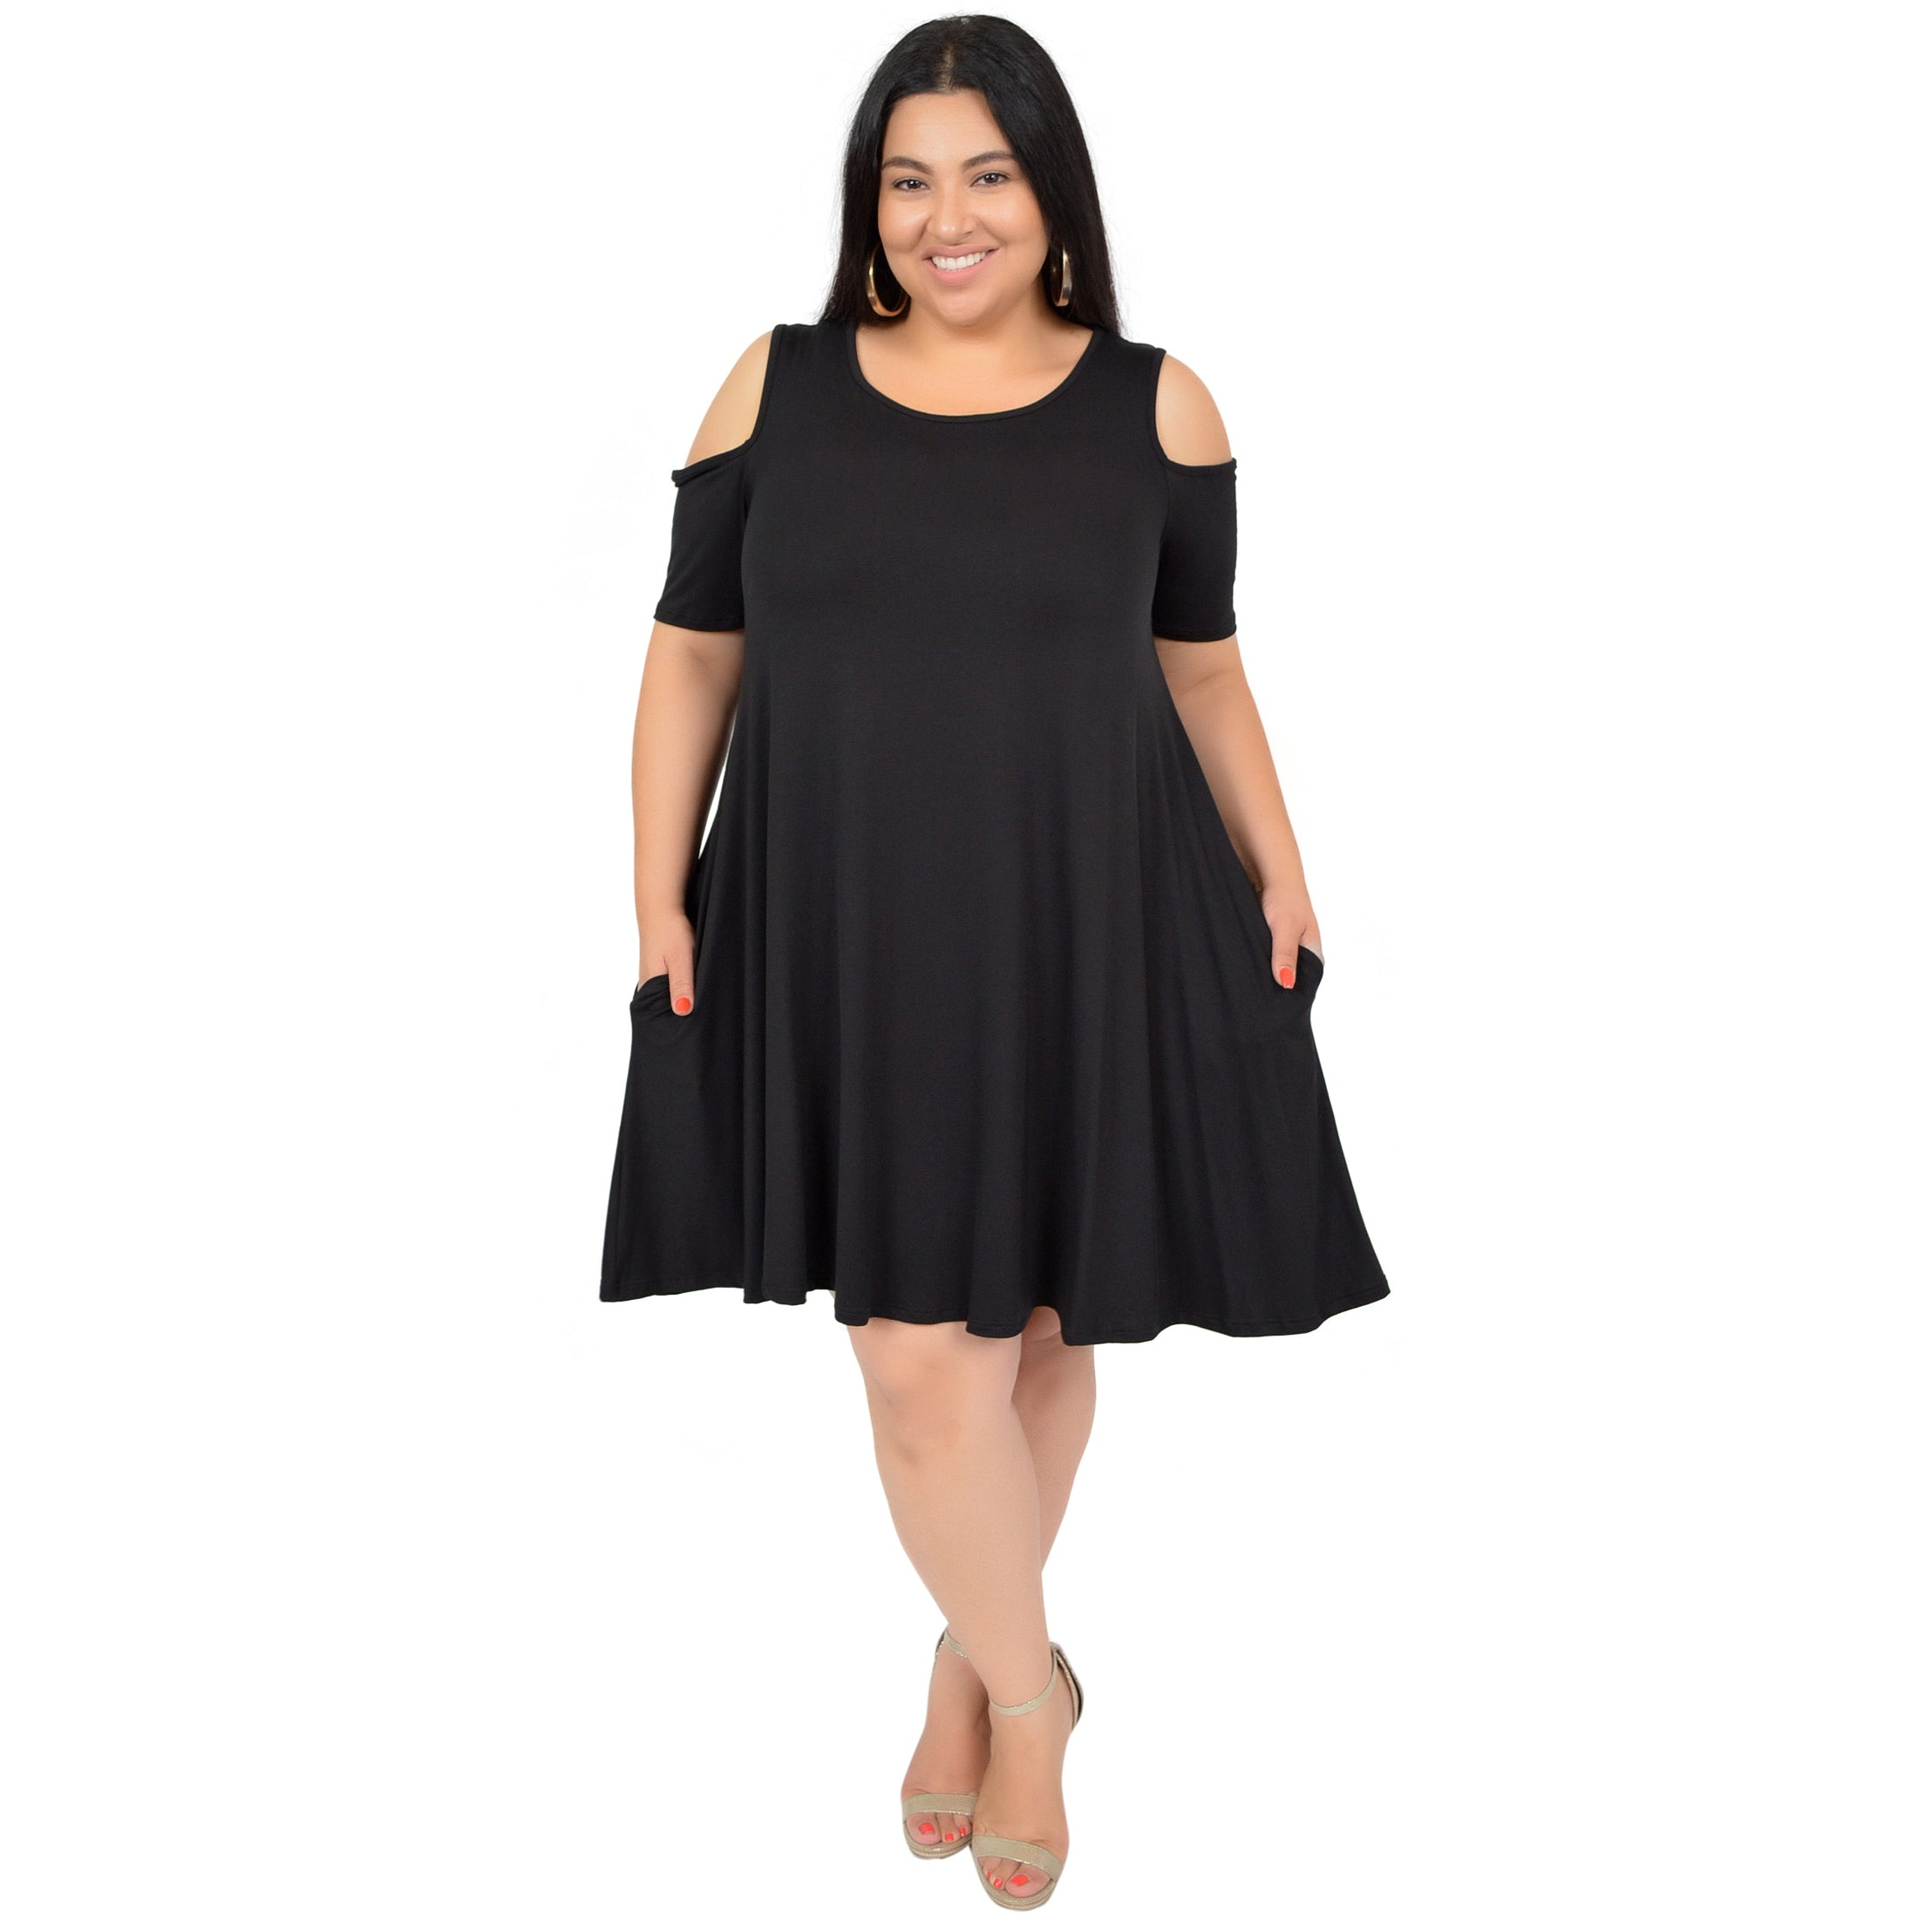 Plus Size Maggie Open Shoulder Short Sleeve Tank Dress